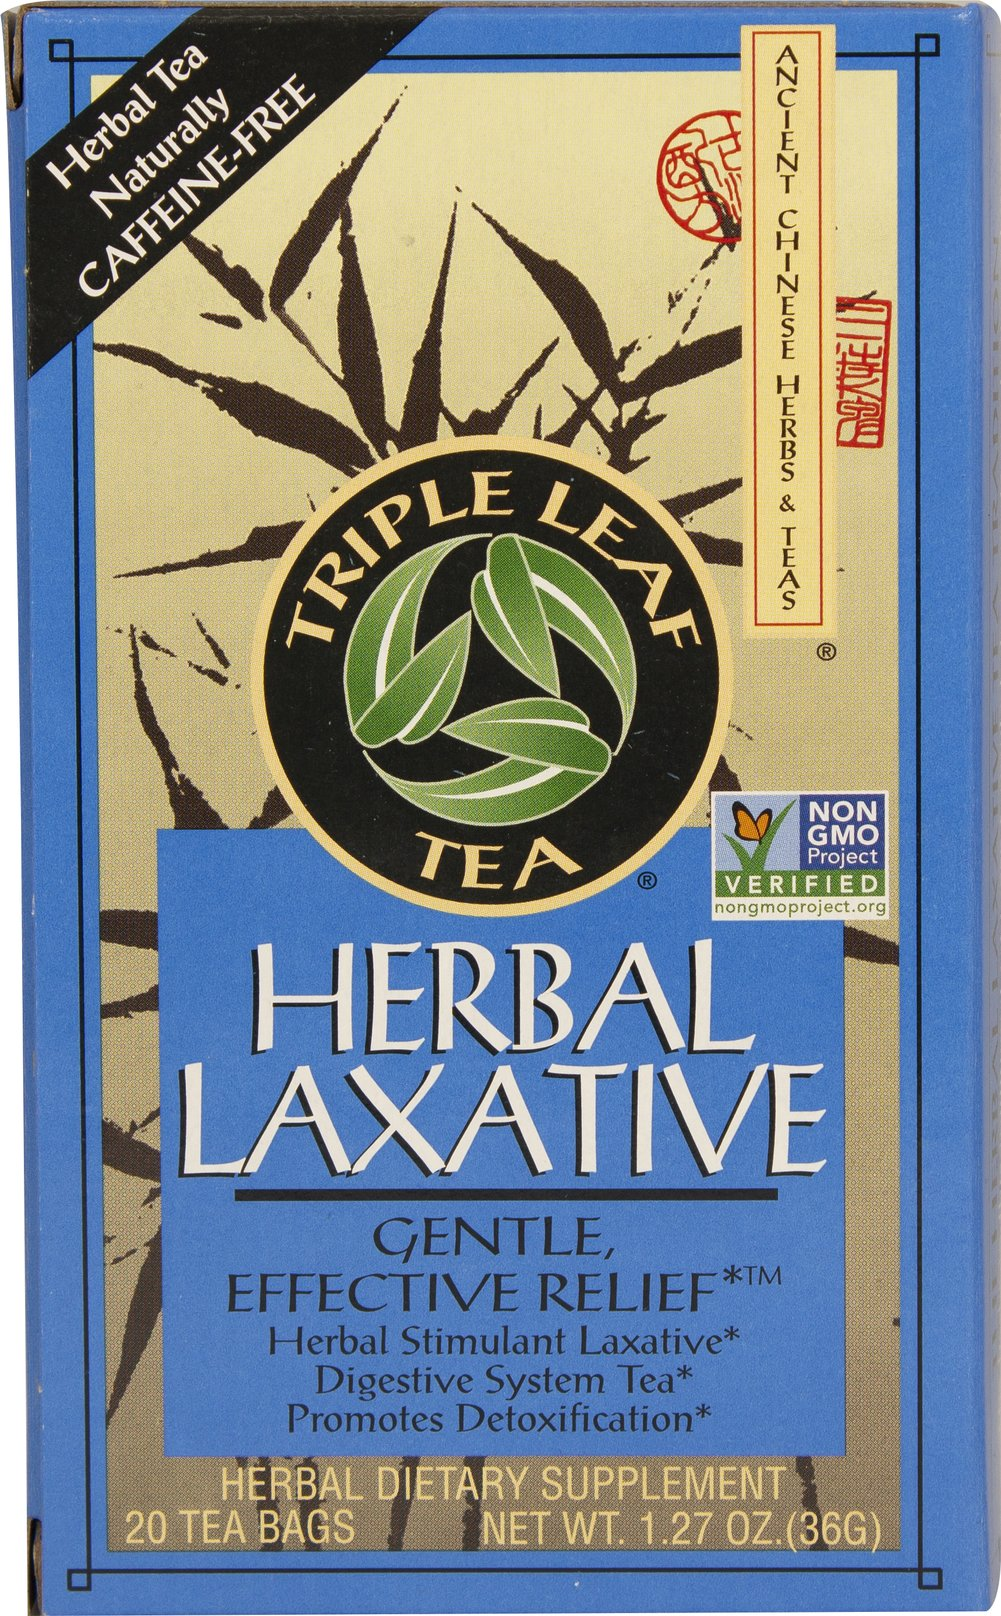 Herbal Laxative <p>Herbal Laxative Tablets is based on traditional use for the relief of occasional constipation.** Our formula brings together holistic properties to help promote regularity.** Herbal Laxative Tablets contain no harsh synthetics, so you can be assured of gentle, yet efficient, cleansing.**</p><p></p><p>Also available in Capsules. See items 2180, 2183 and 2185.</p> 500 Tablets  $47.99